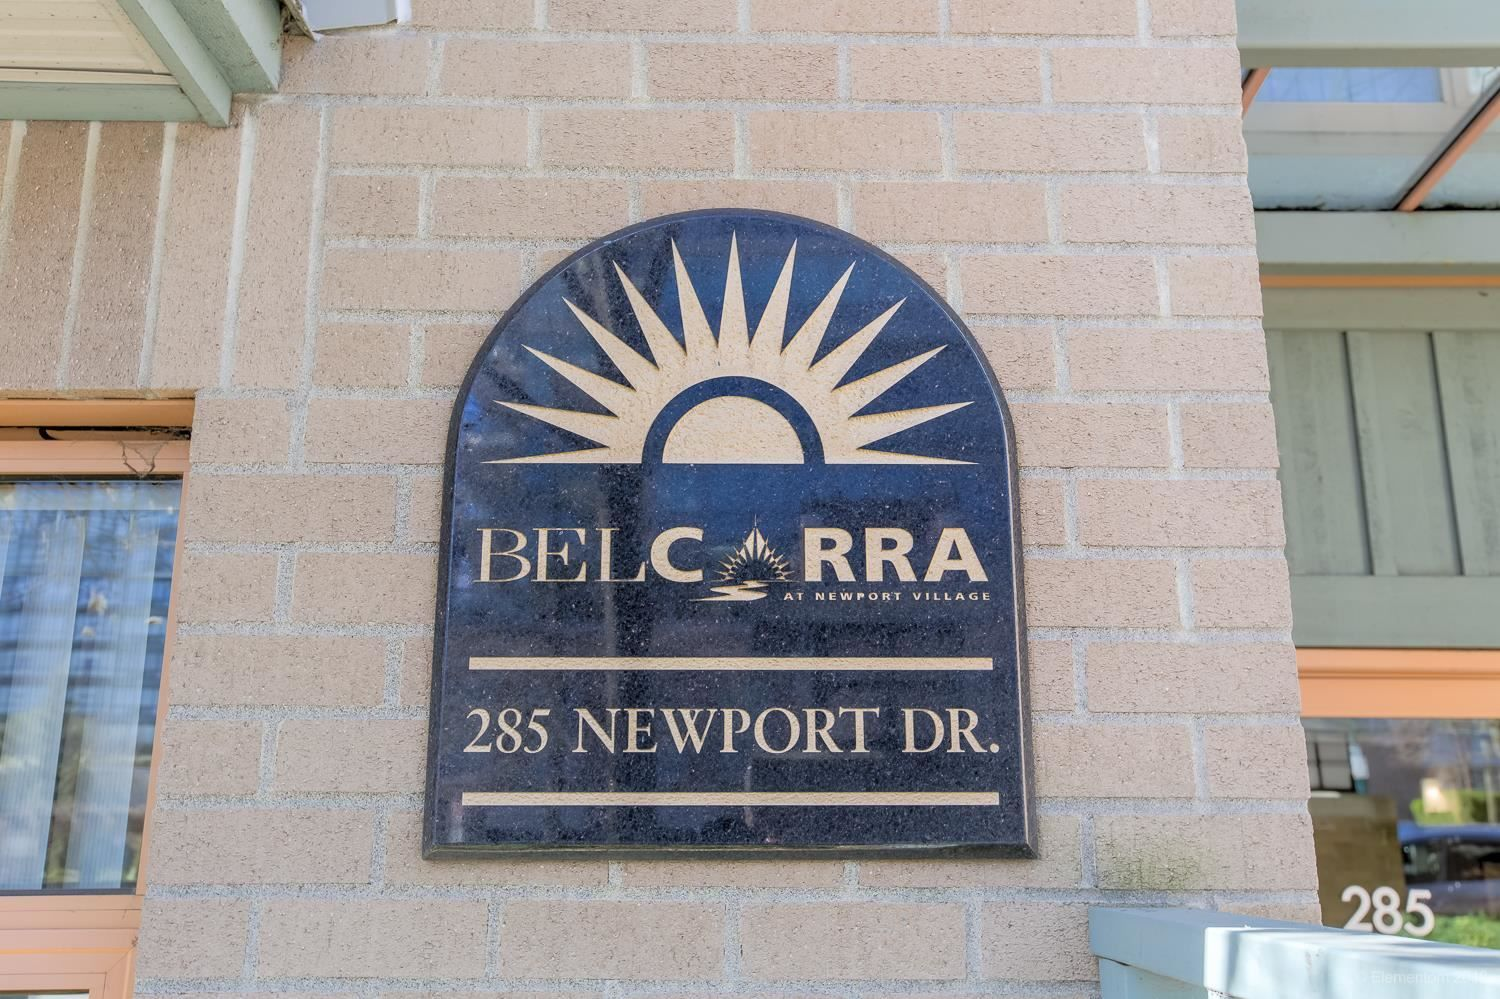 Welcome to the Belcarra!